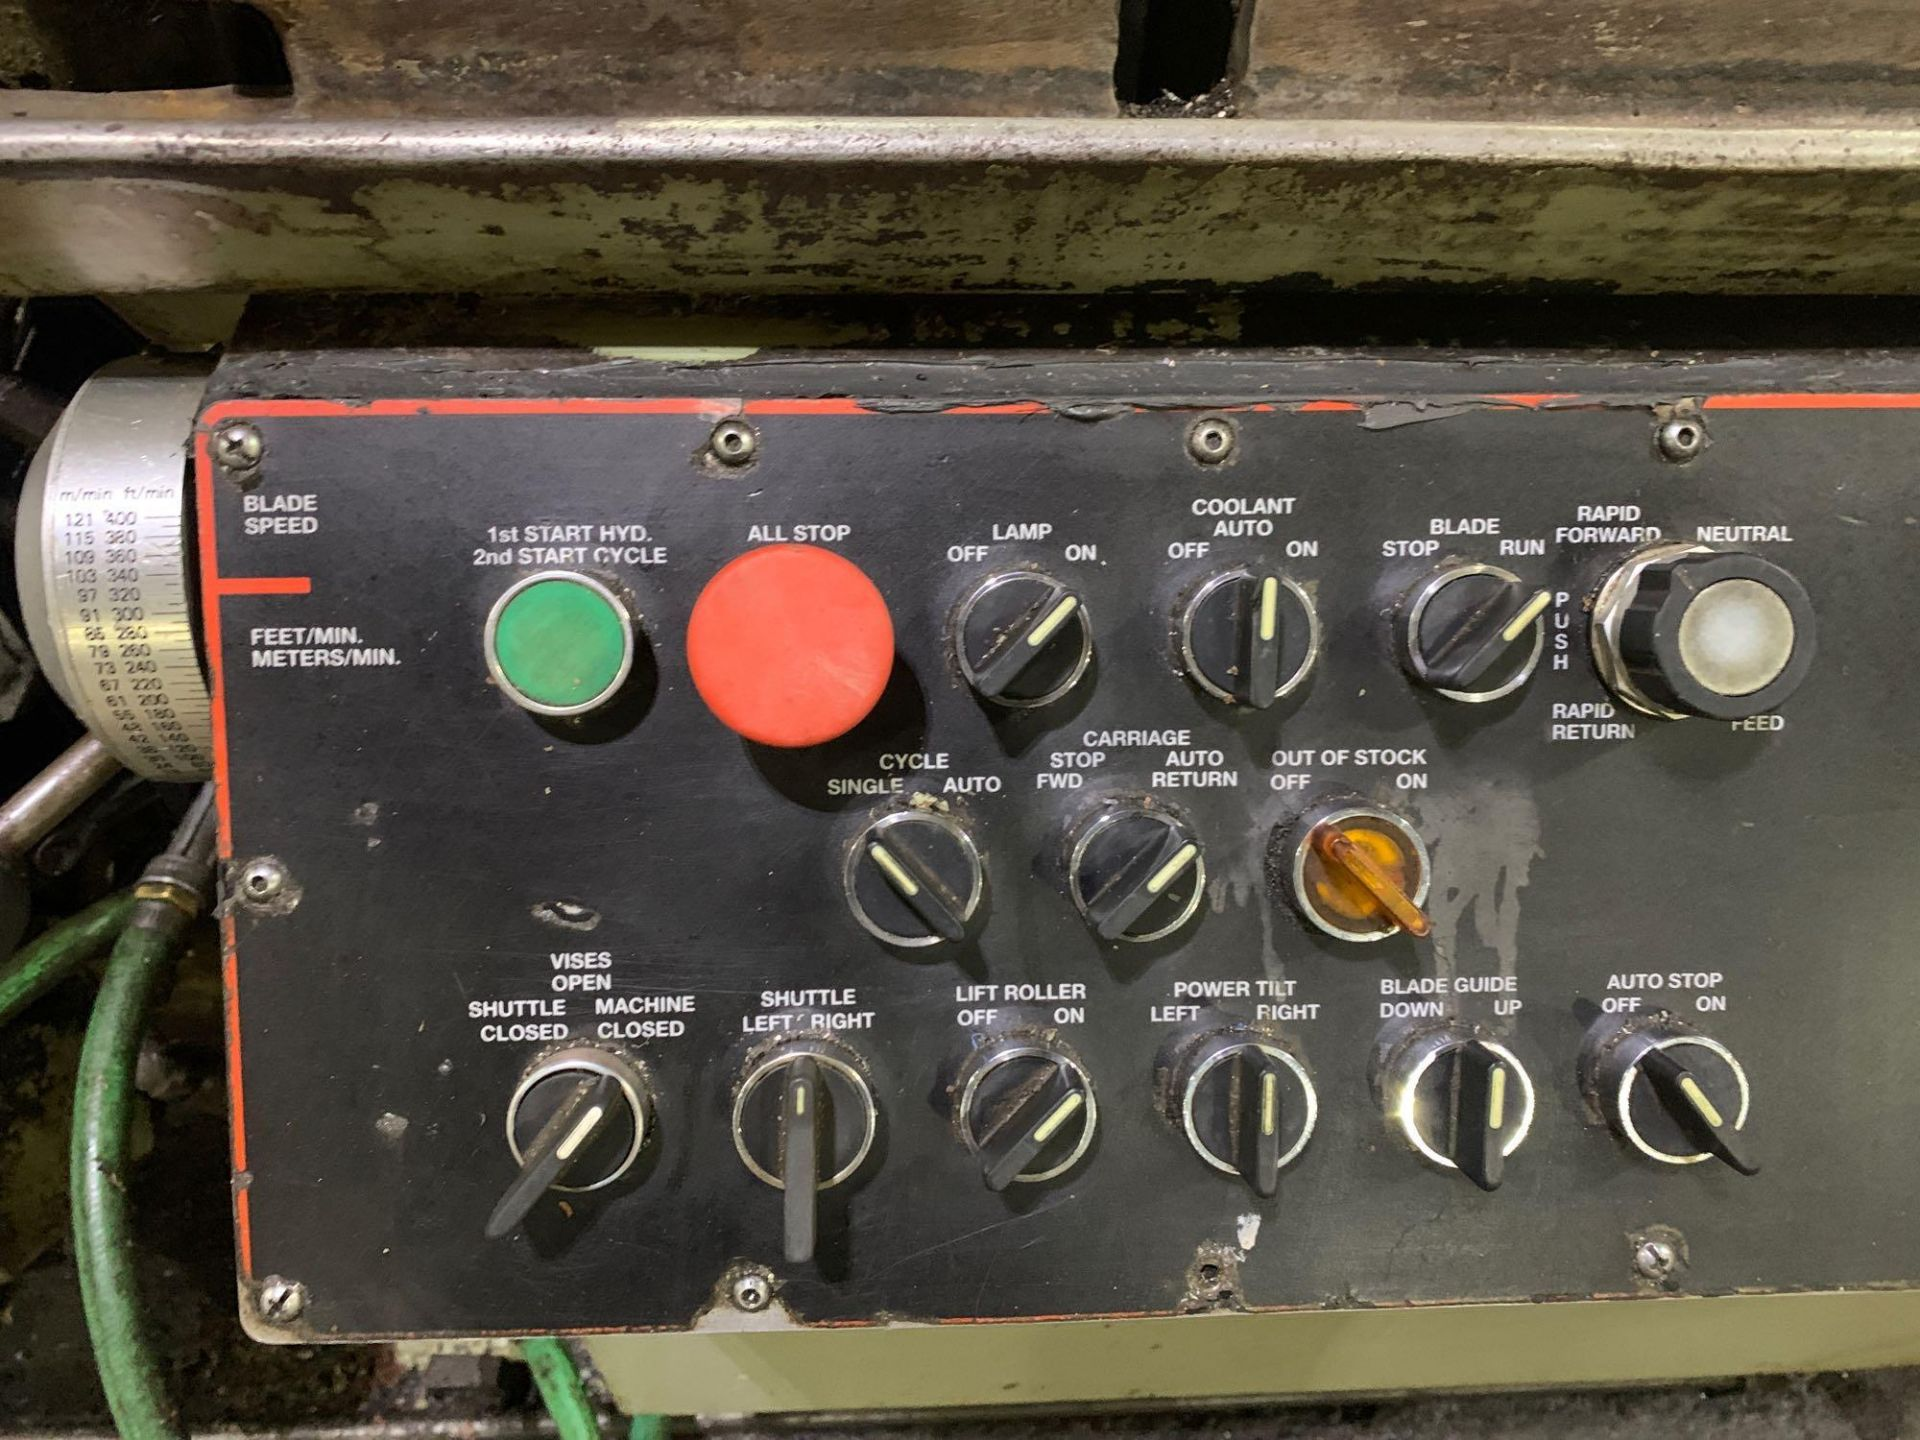 """Marvel Armstrong Blum Automatic Universal Band Saw Model 81A11PC Rated Capacity 18"""" x 20"""" Serial No. - Image 24 of 30"""